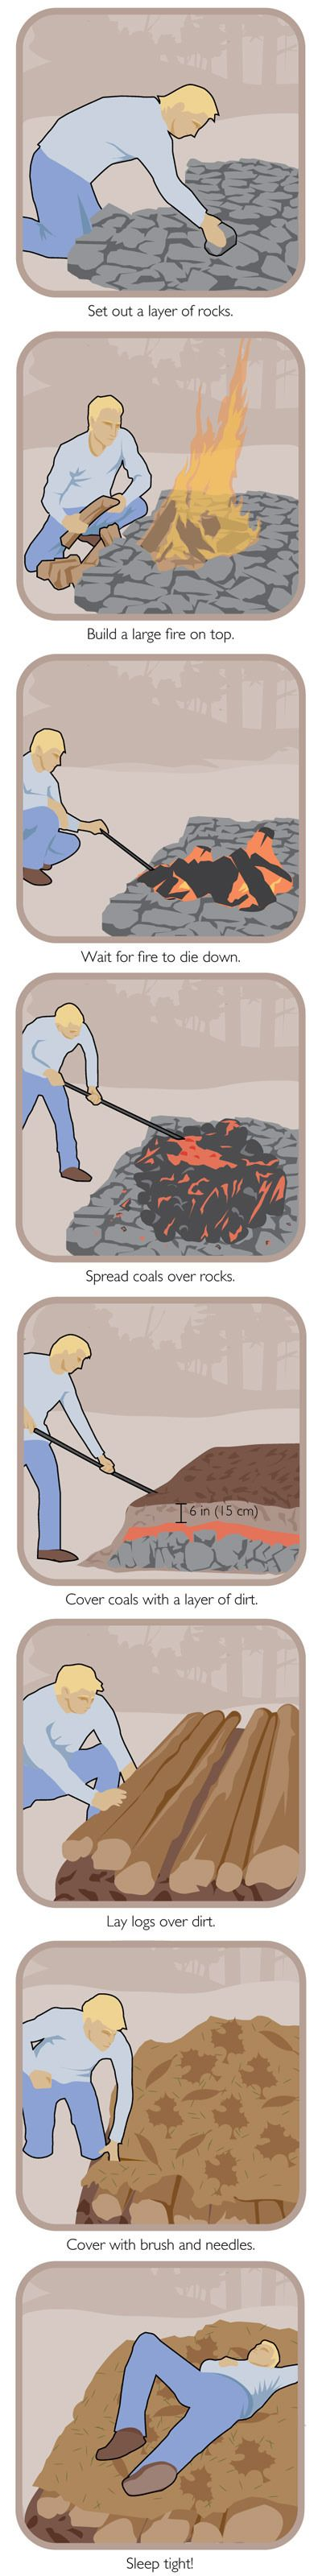 Stay Warm in a Fire Bed. This is an epic fix to a survival problem: how to get through a cold night in the wild. This eight-step process involves rocks, coals and logs.